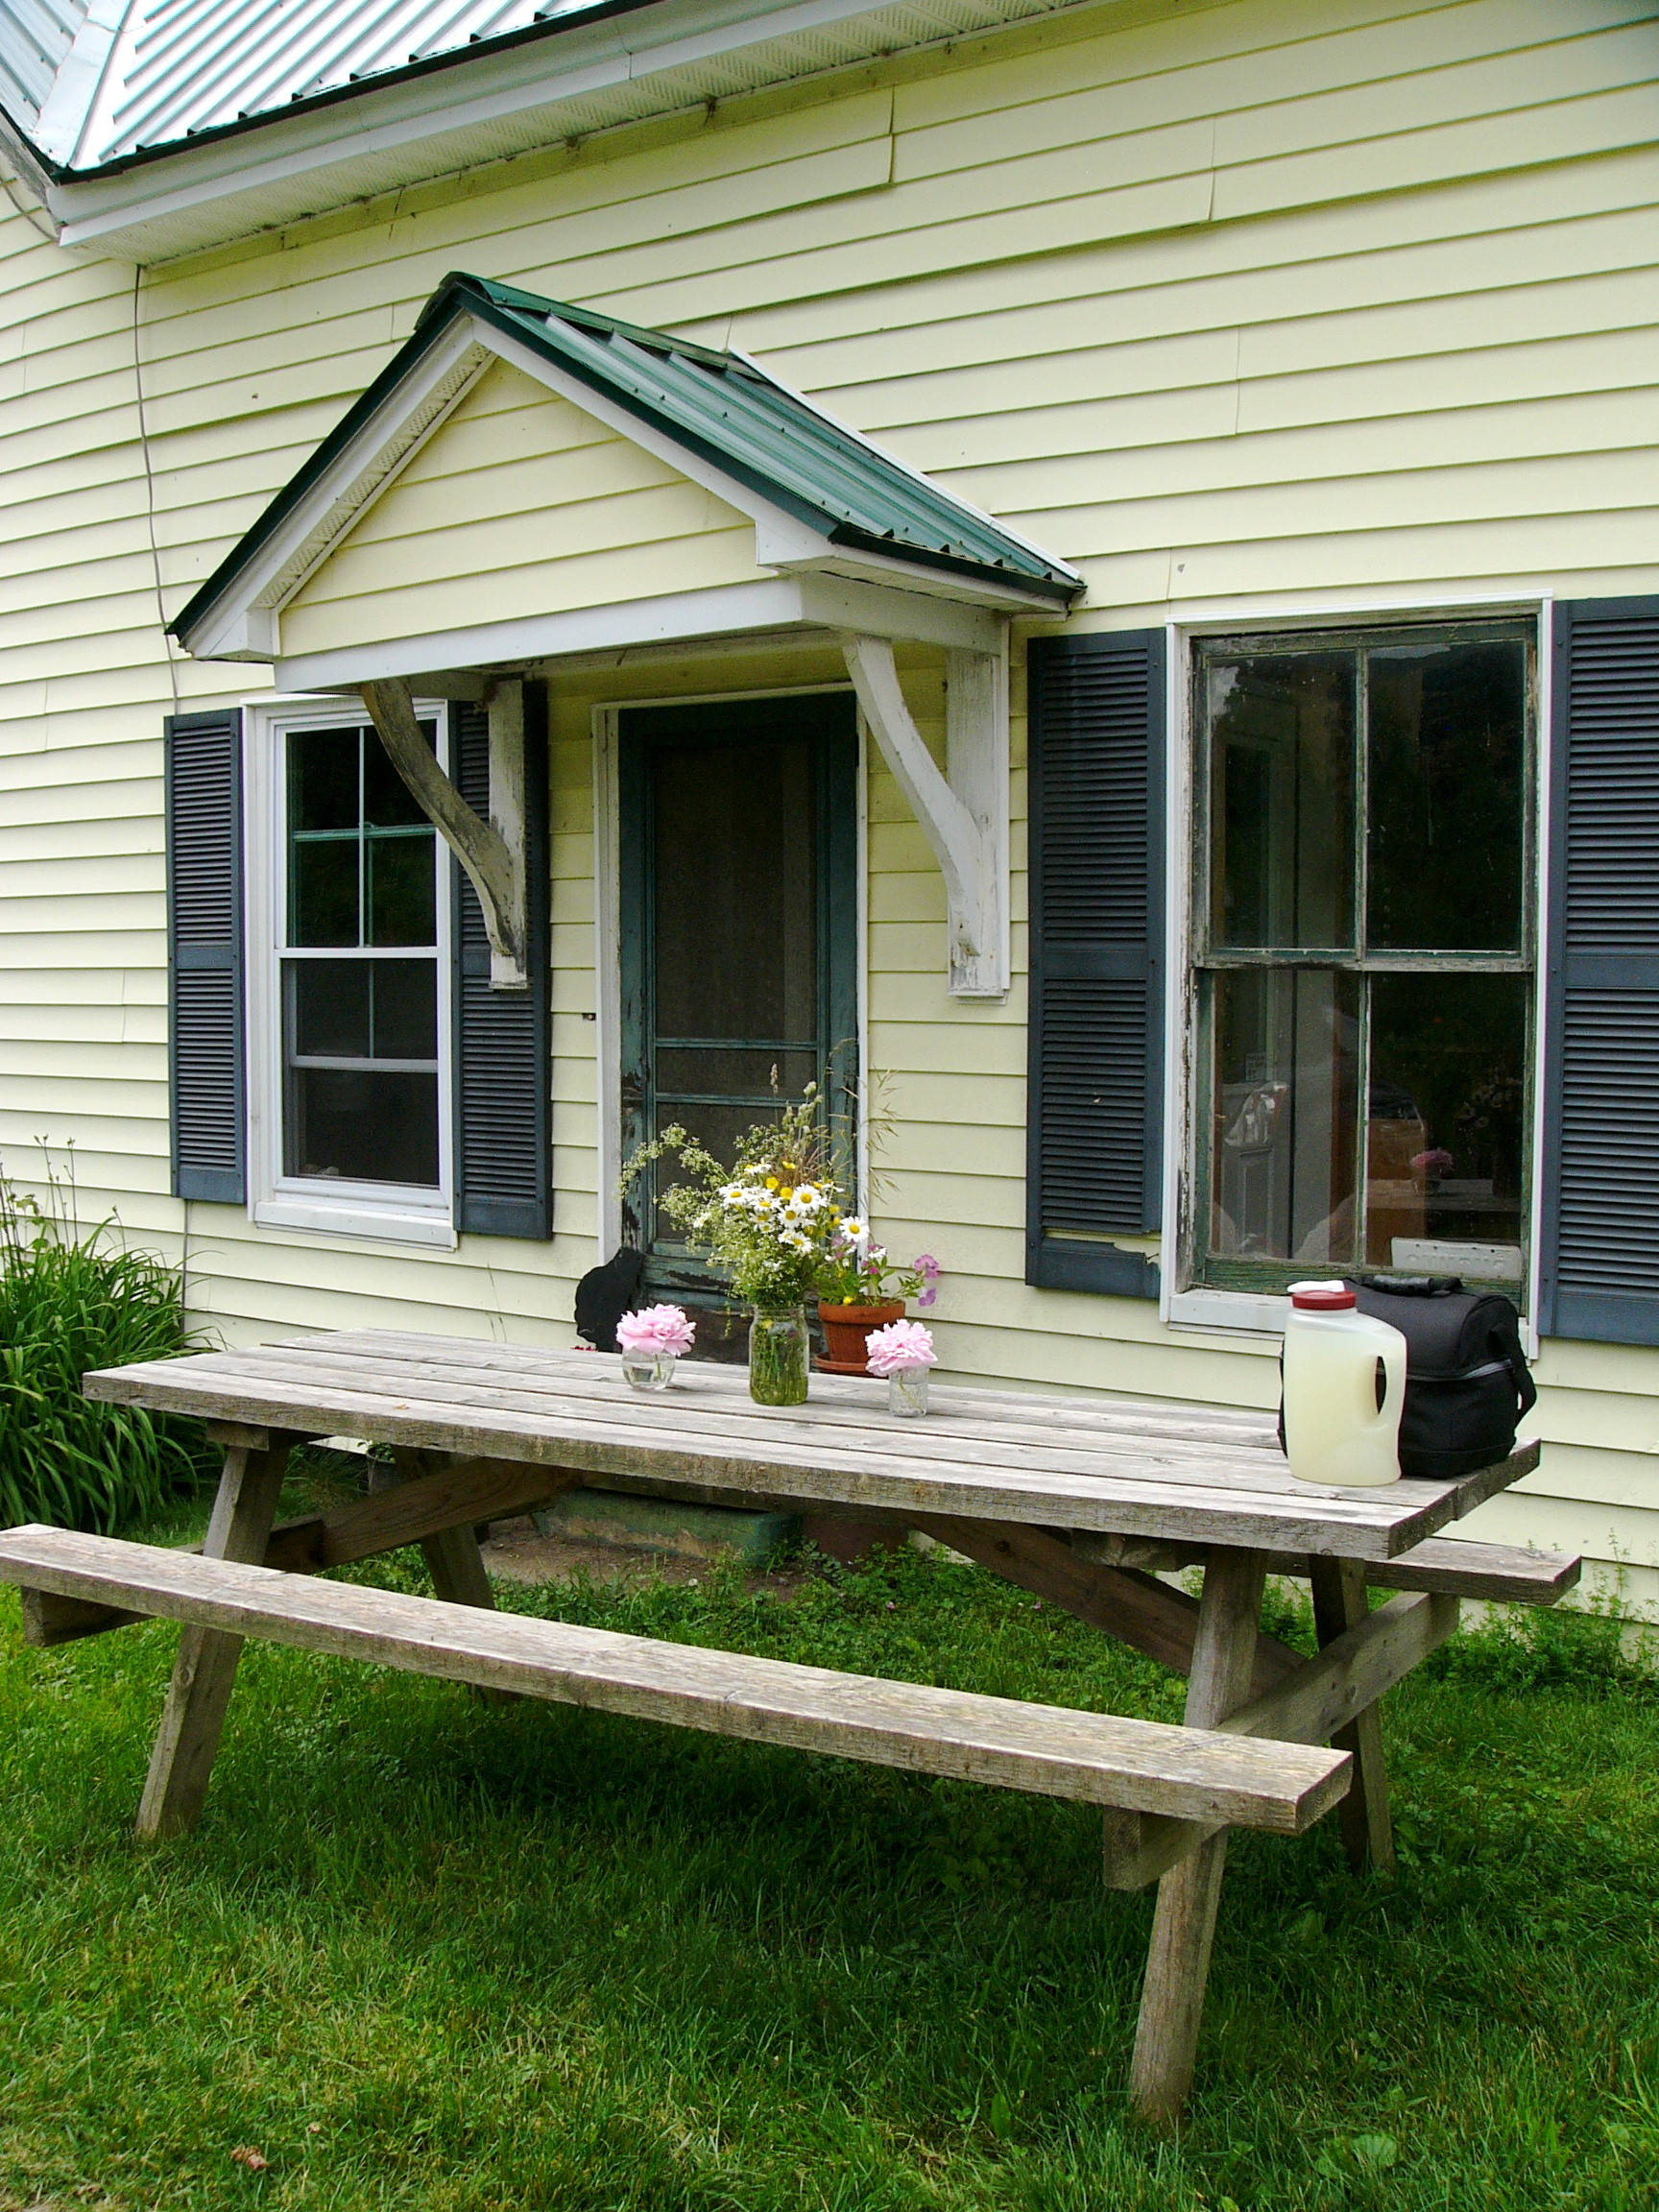 The Yellow Farmhouse At Windhorse Farm Is A Warm And Welcoming Place To Call Home